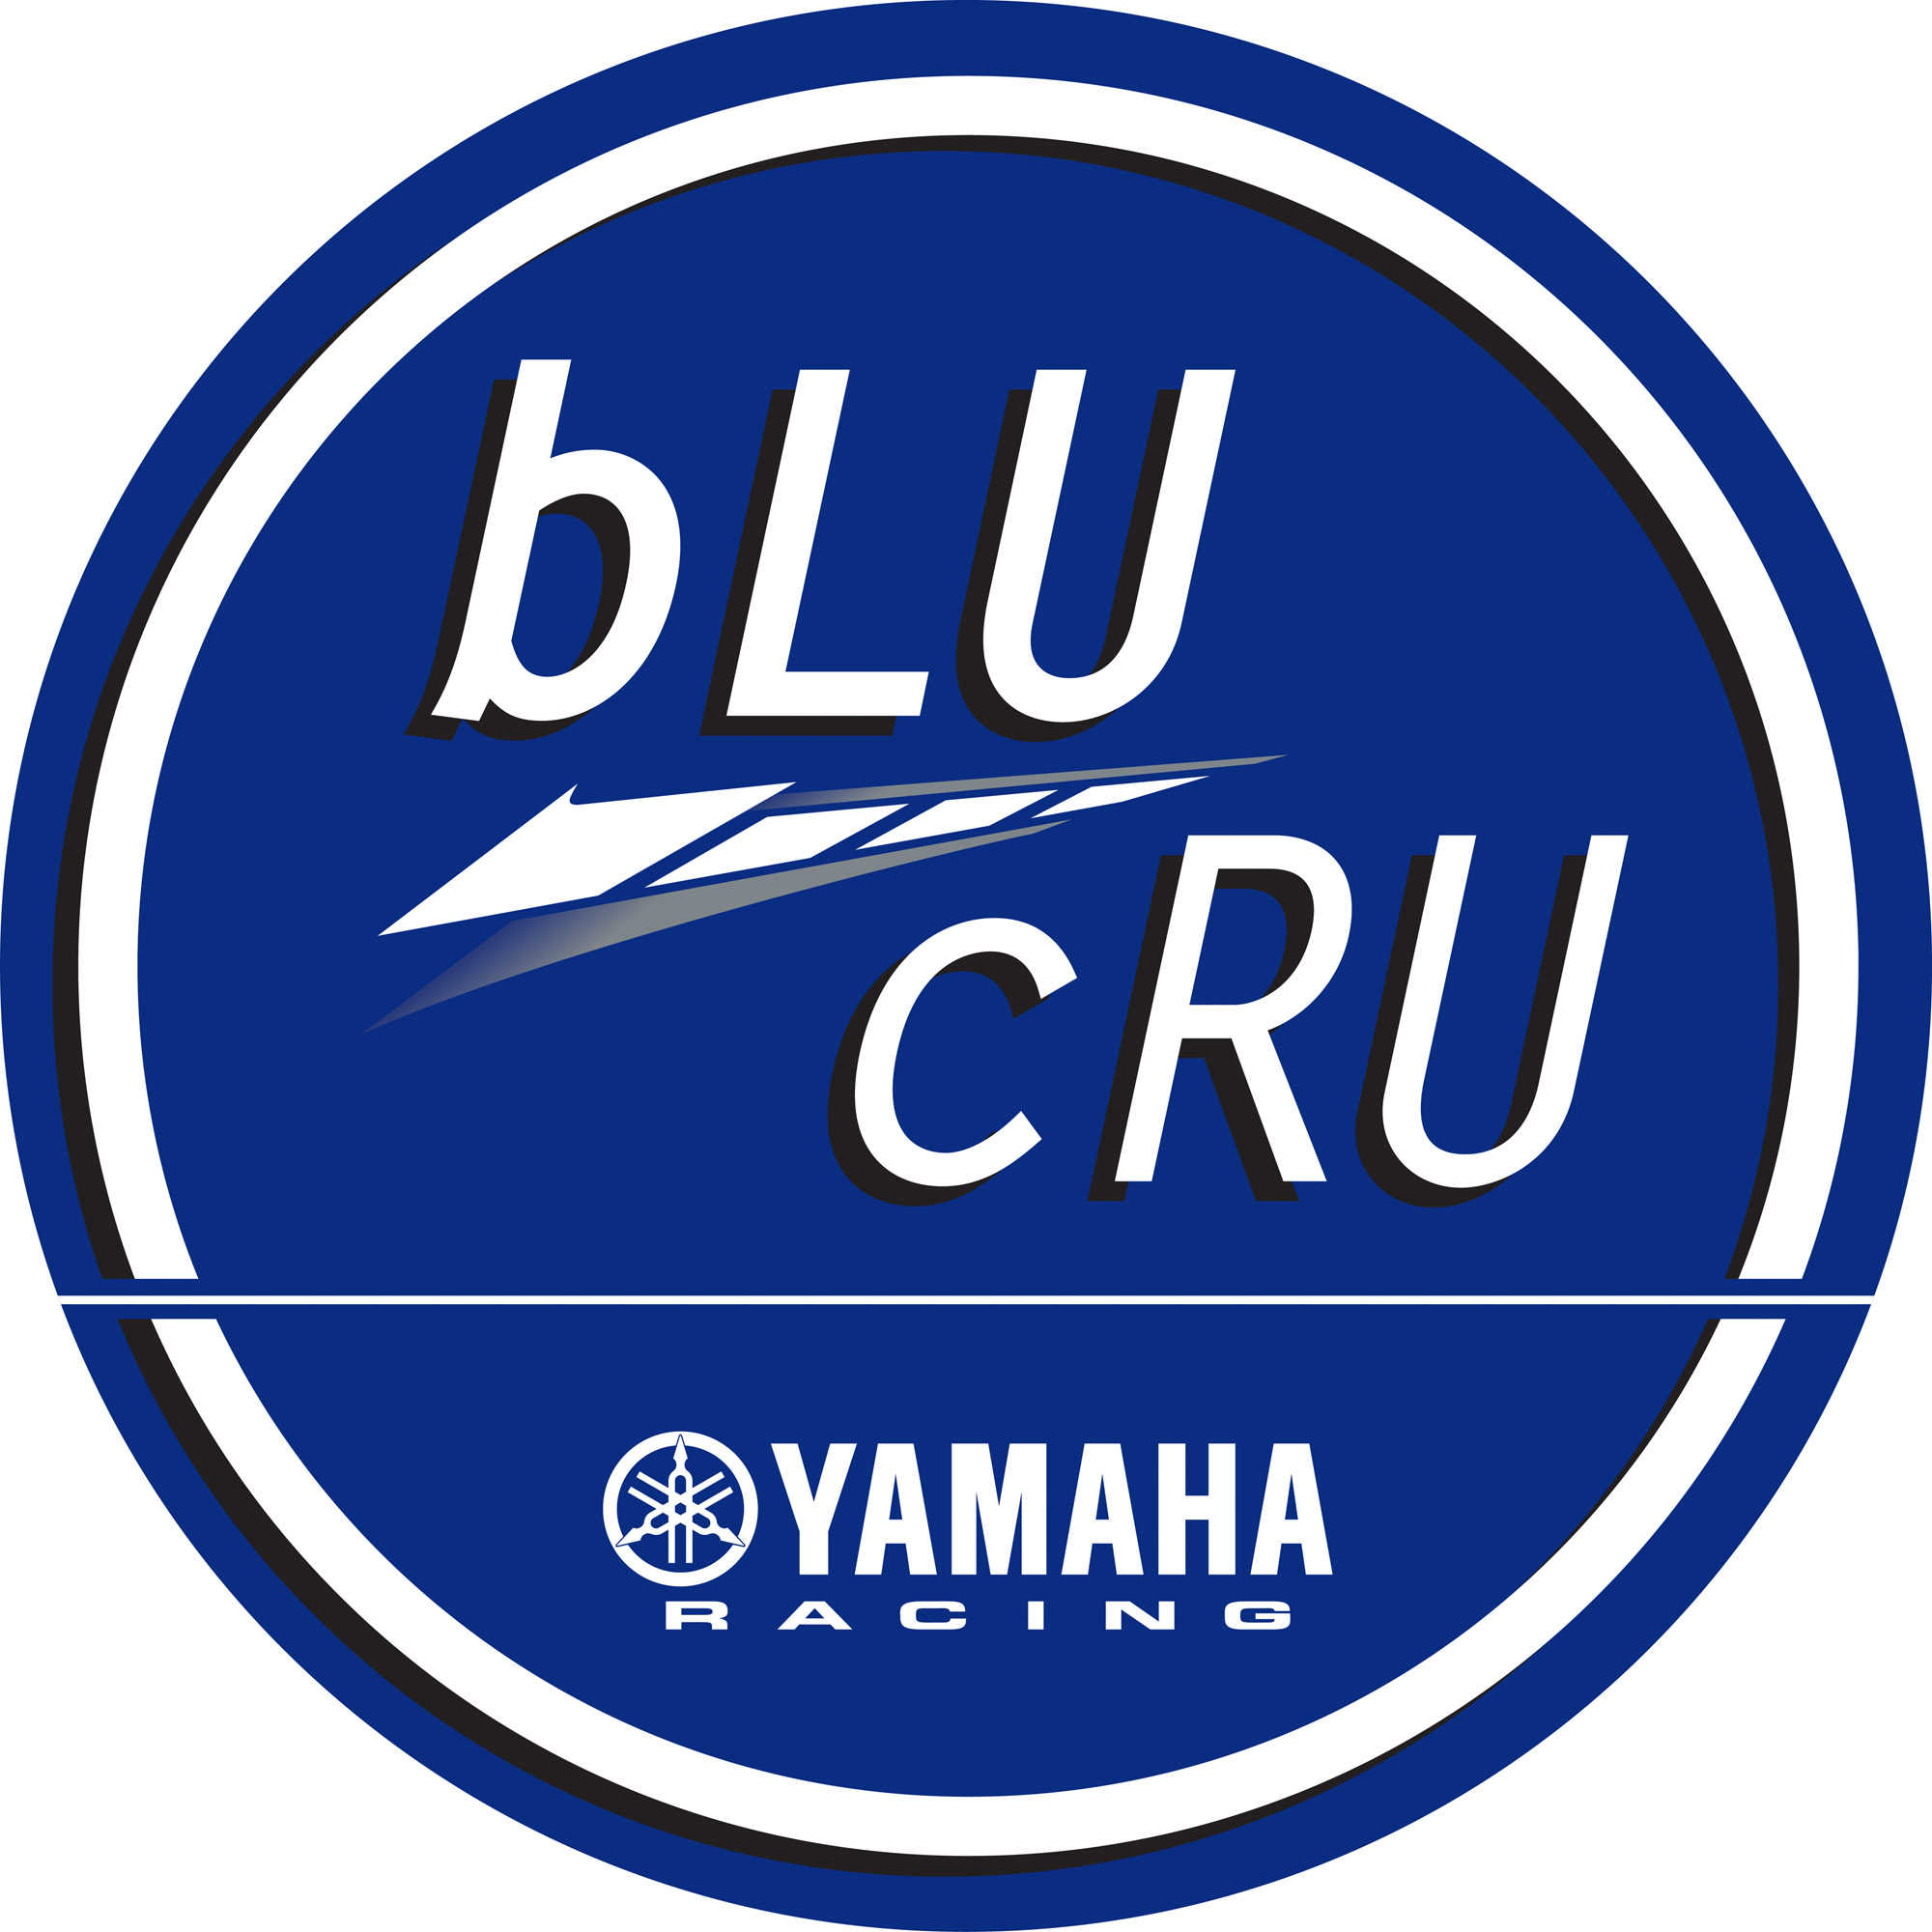 yamaha blu cru revealed bike review